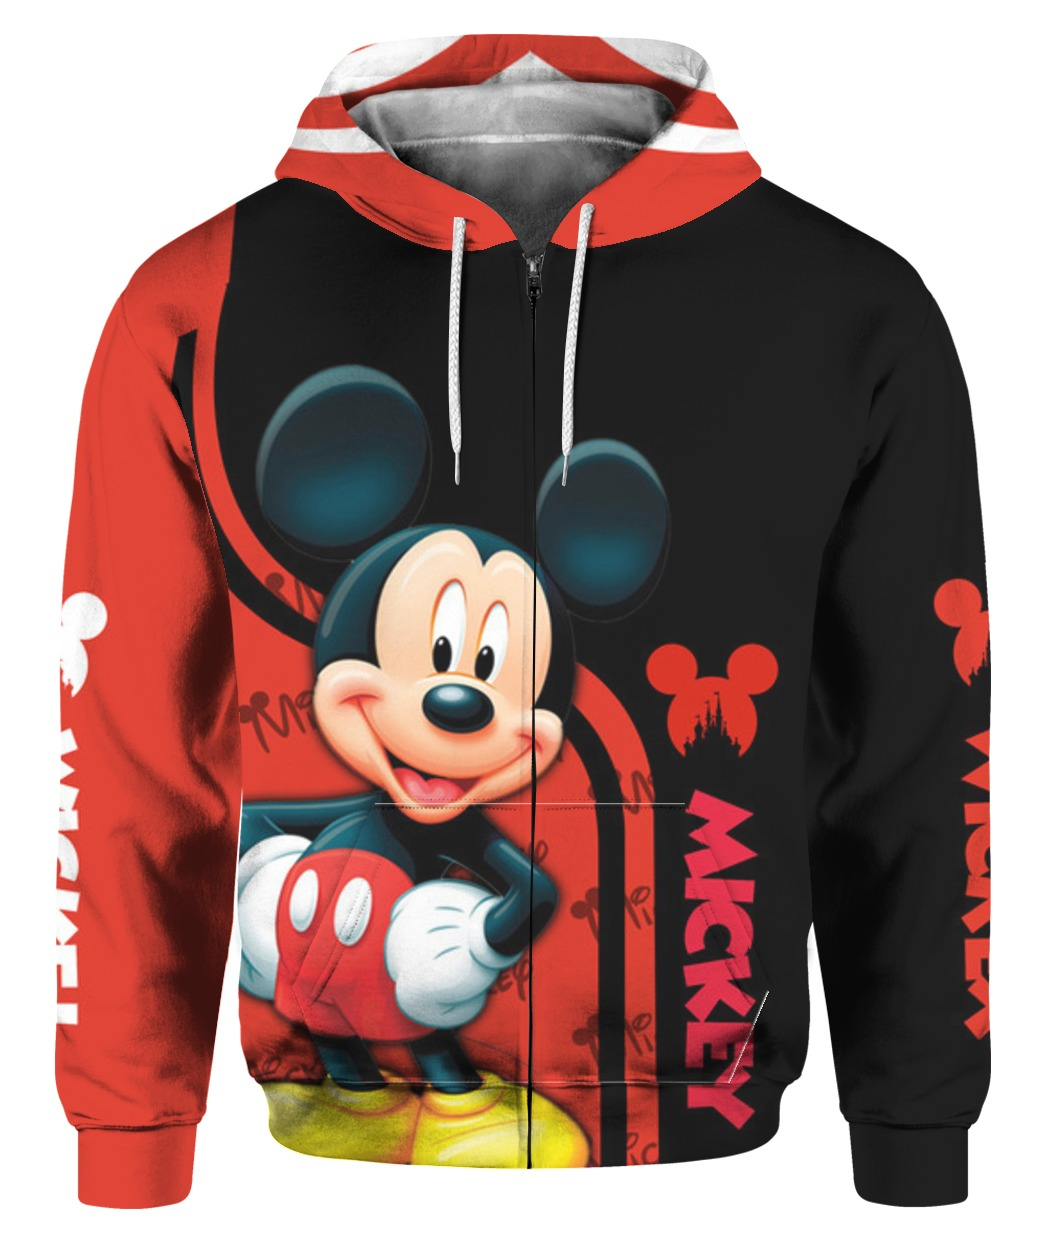 Mickey mouse all over print zip hoodie